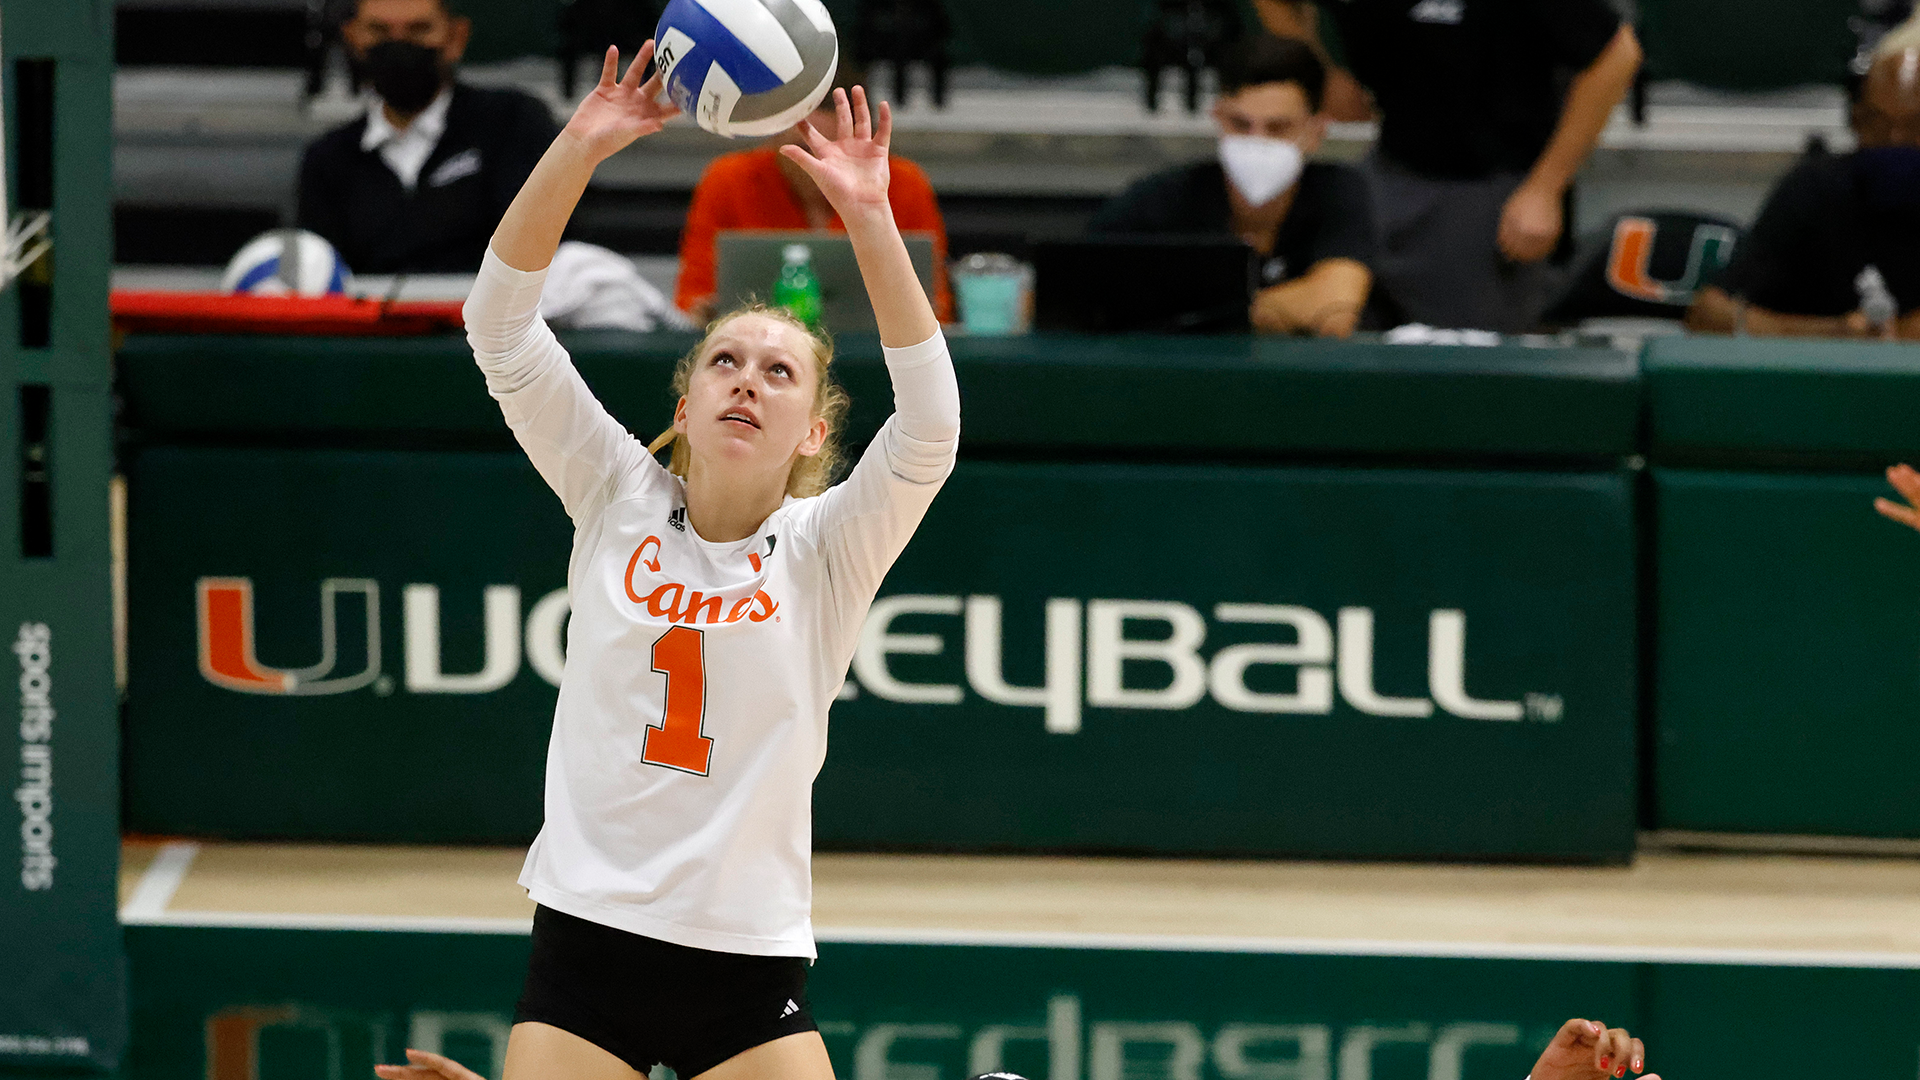 Vach Notches Double-Double in Canes Sweep of Notre Dame